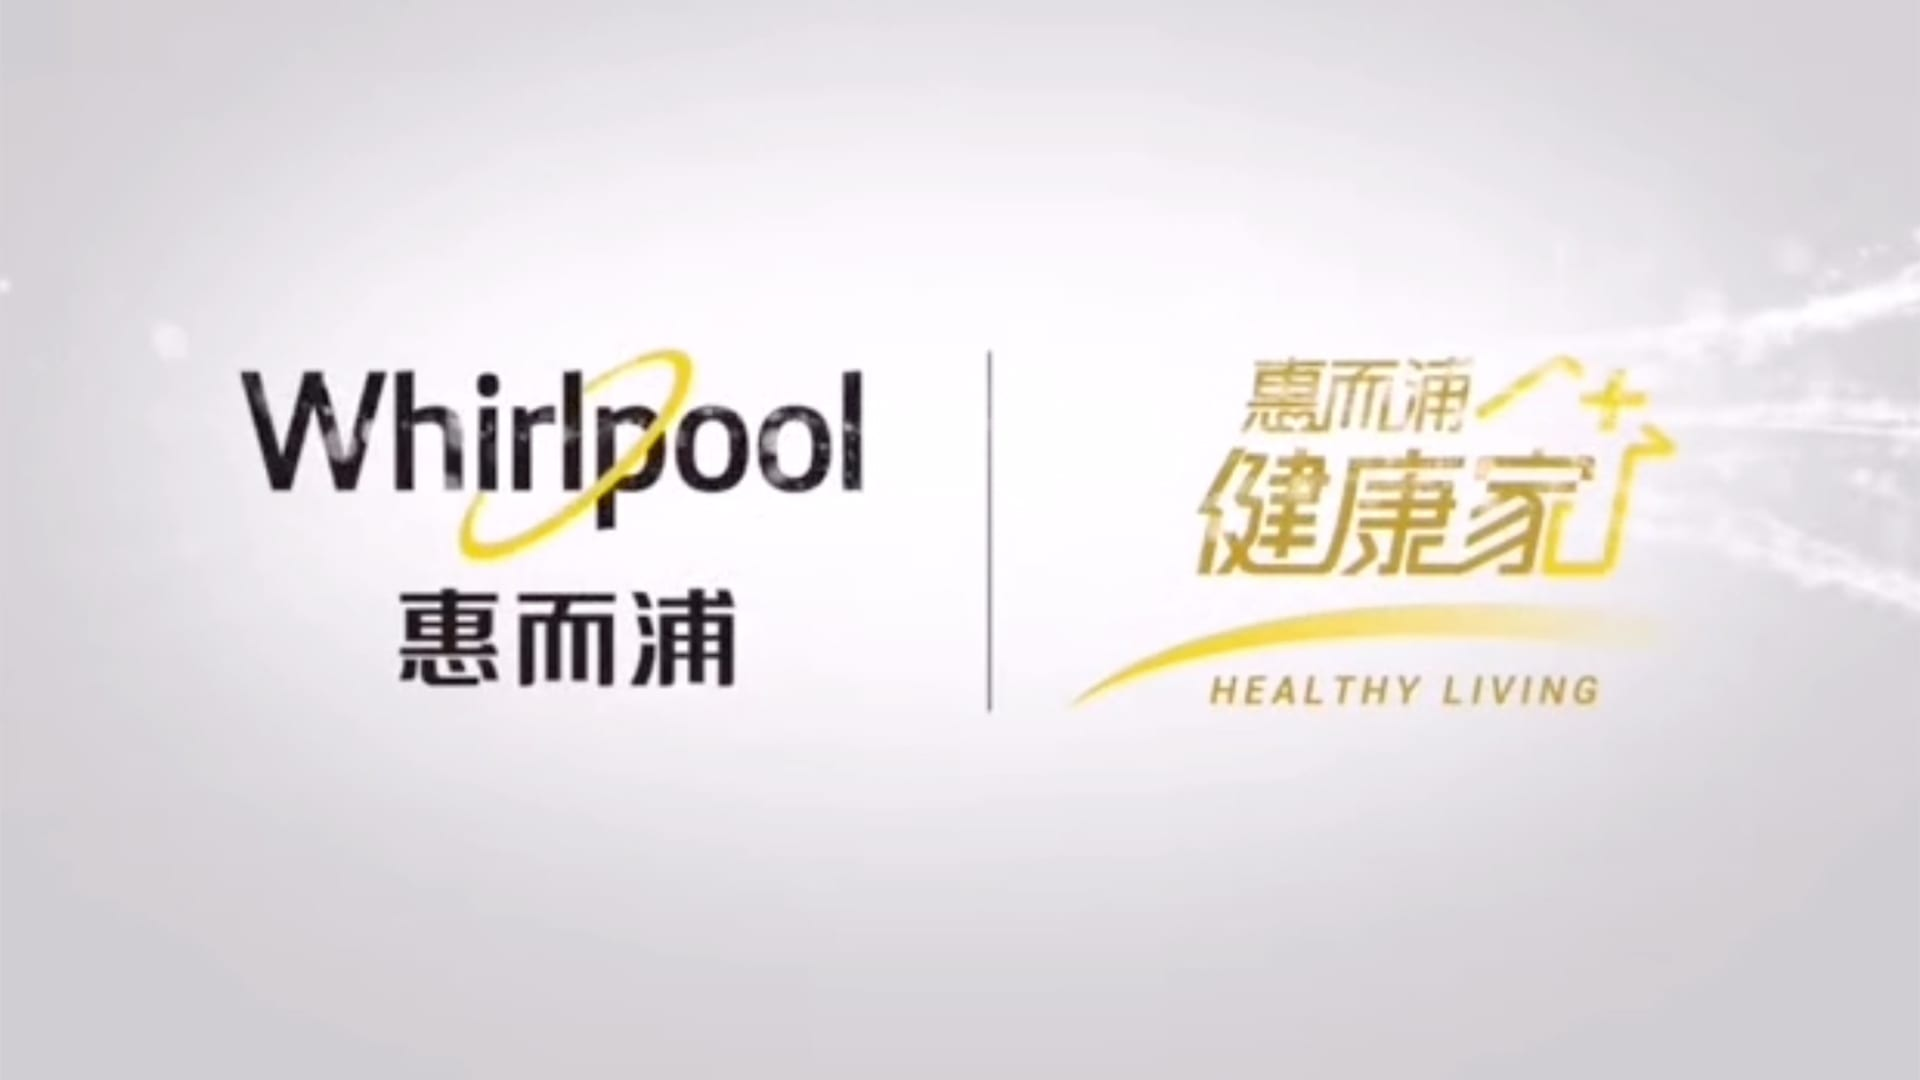 Whirlpool China